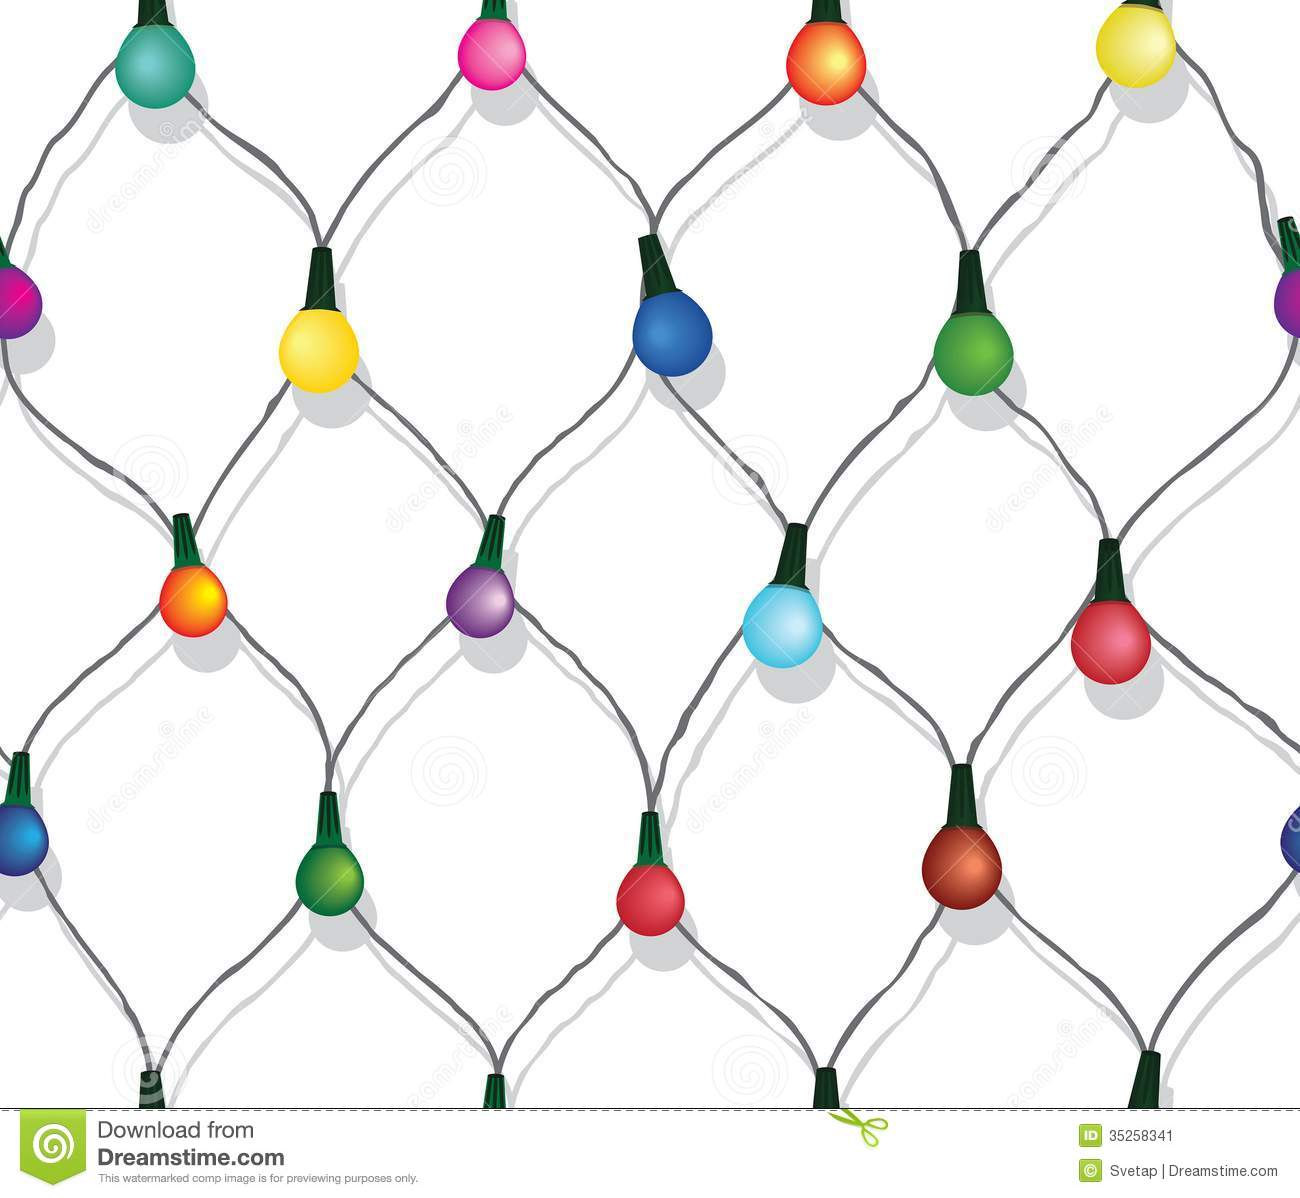 Seamless String Of Christmas Lights Isolated On White Stock Image - Image: 35258341